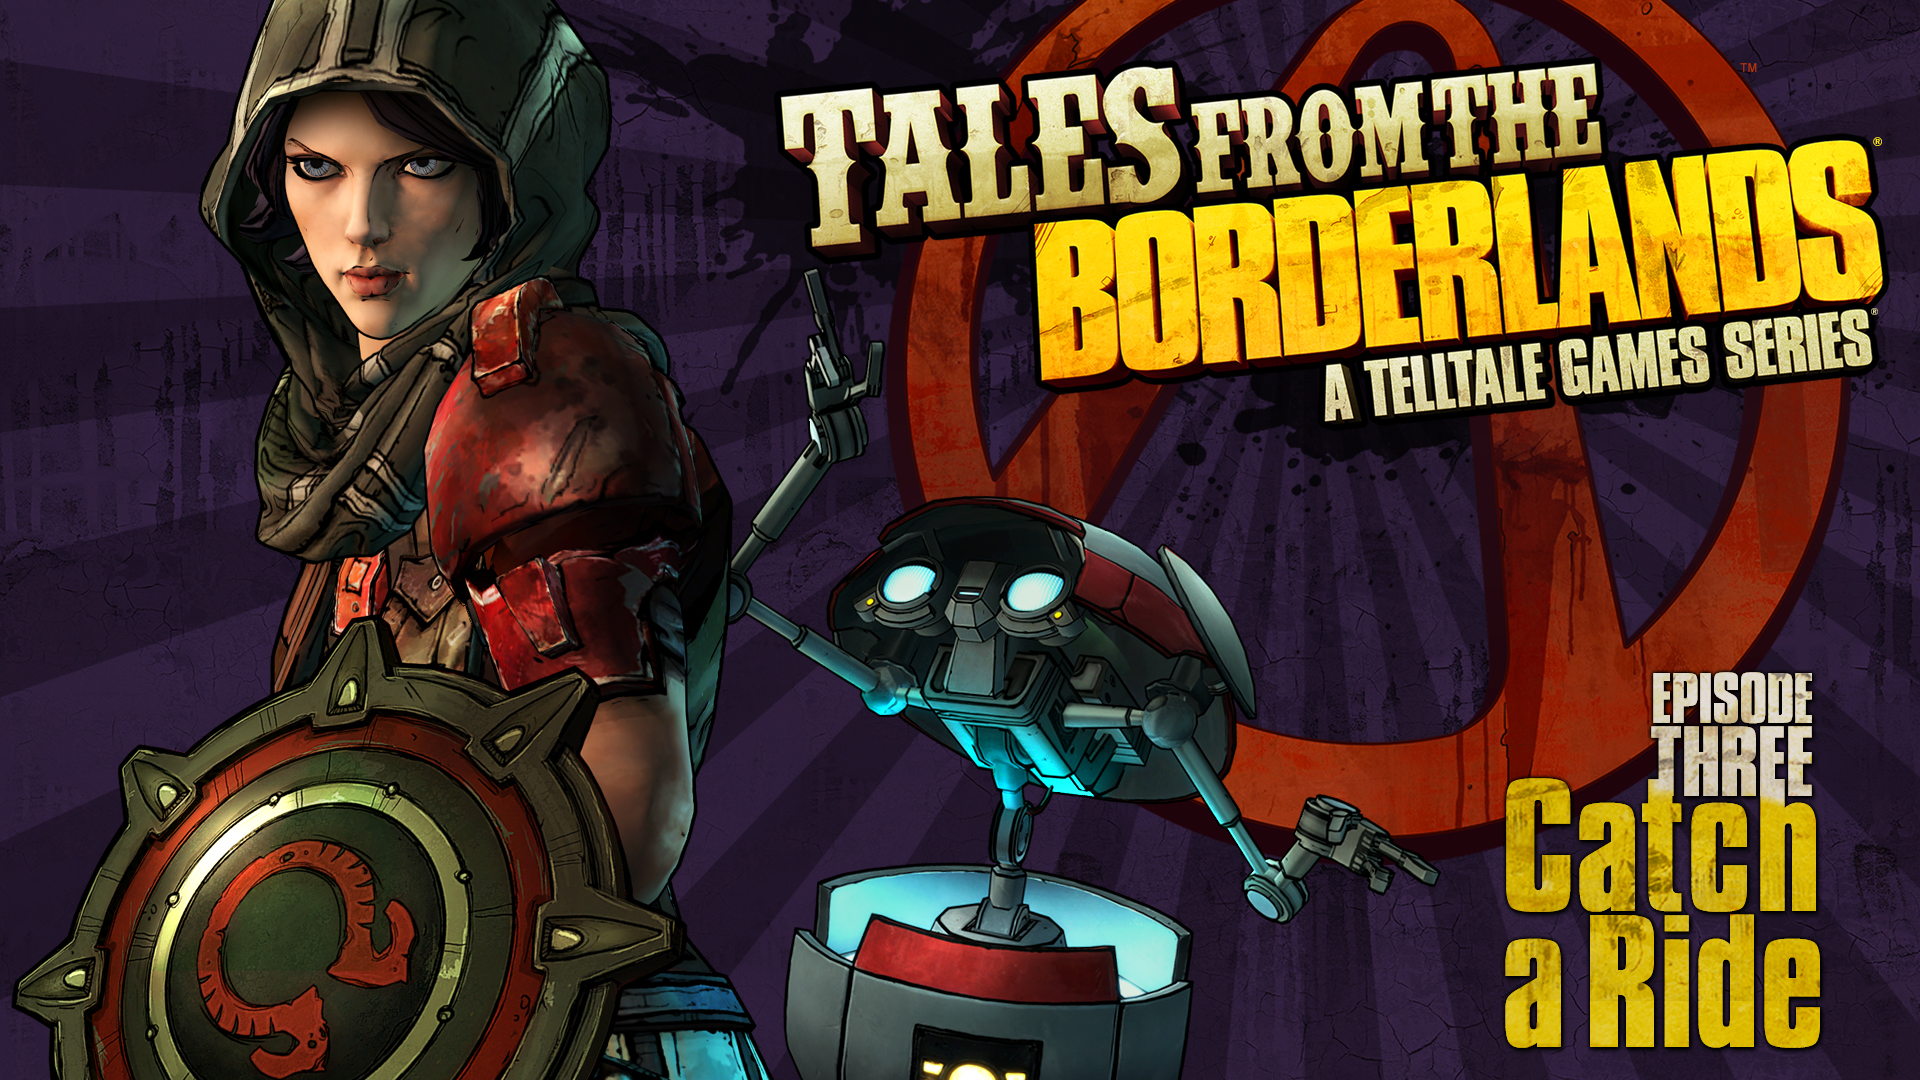 Tales from the Borderlands is set to continue this week with Episode 3